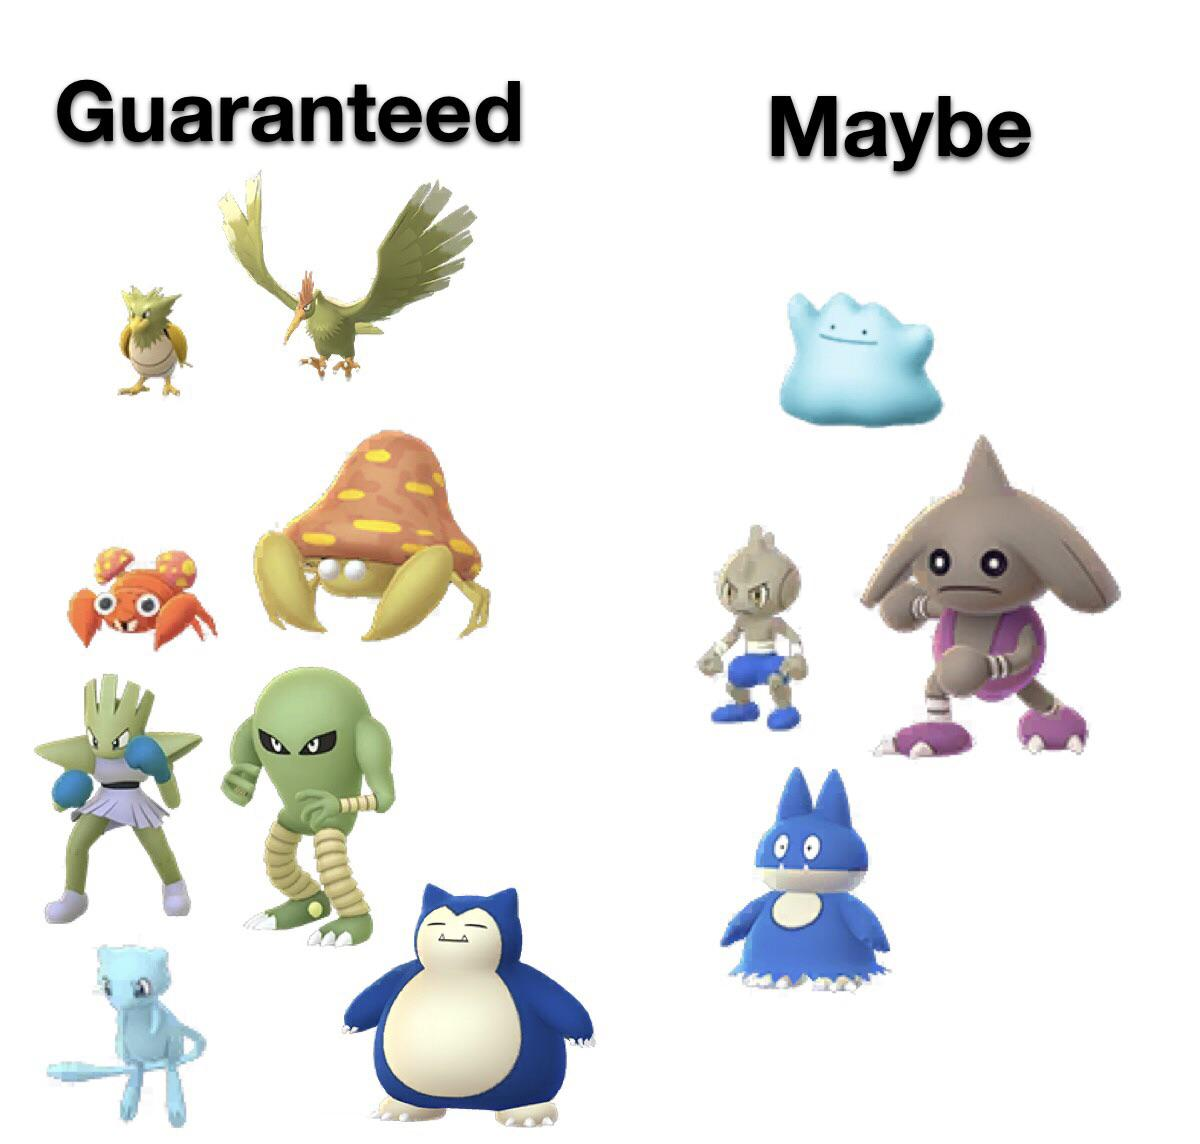 New and potential shiny forms